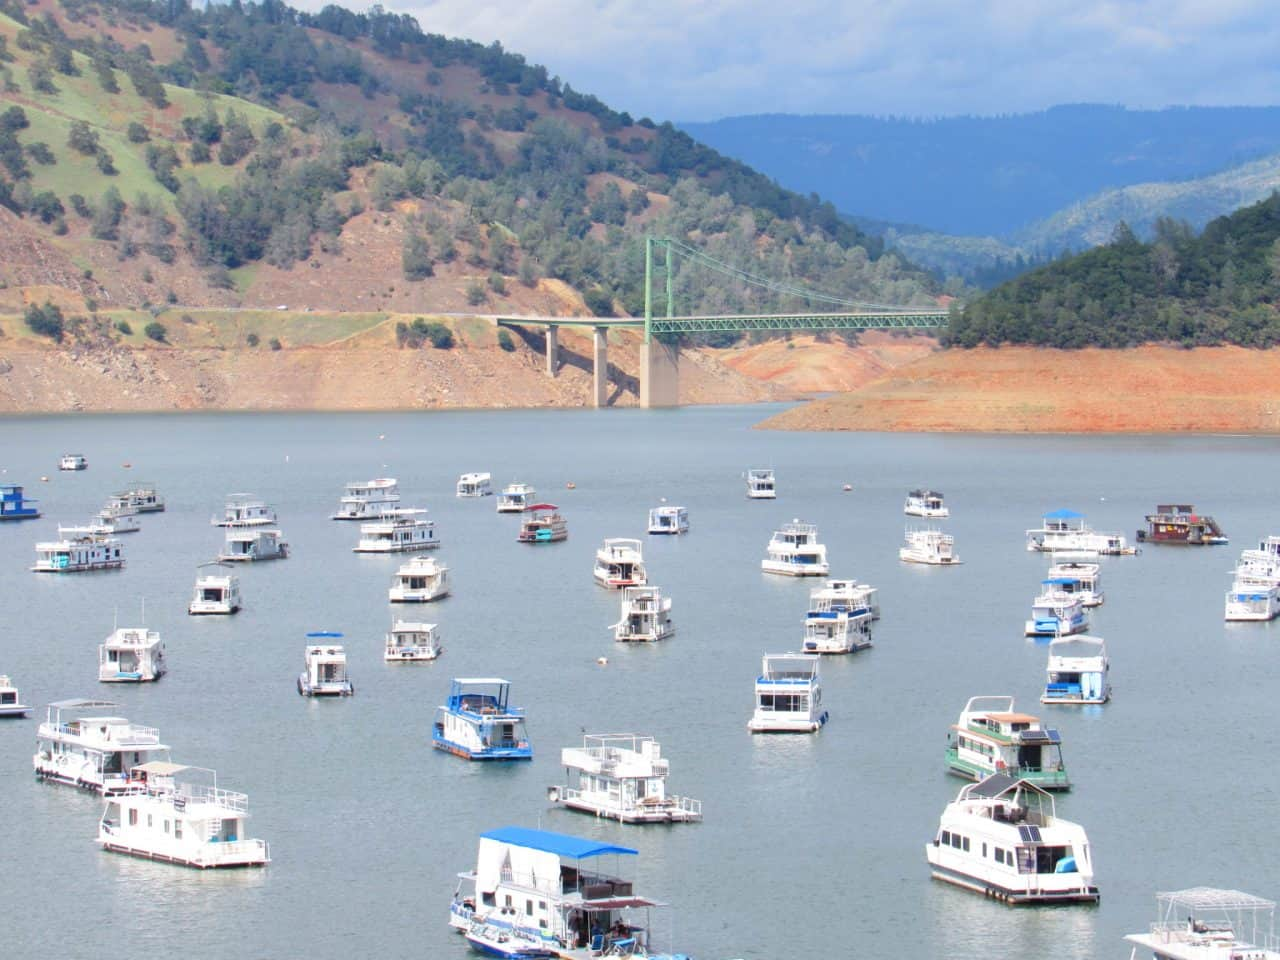 Lots of houseboats docked at Lake Oroville.